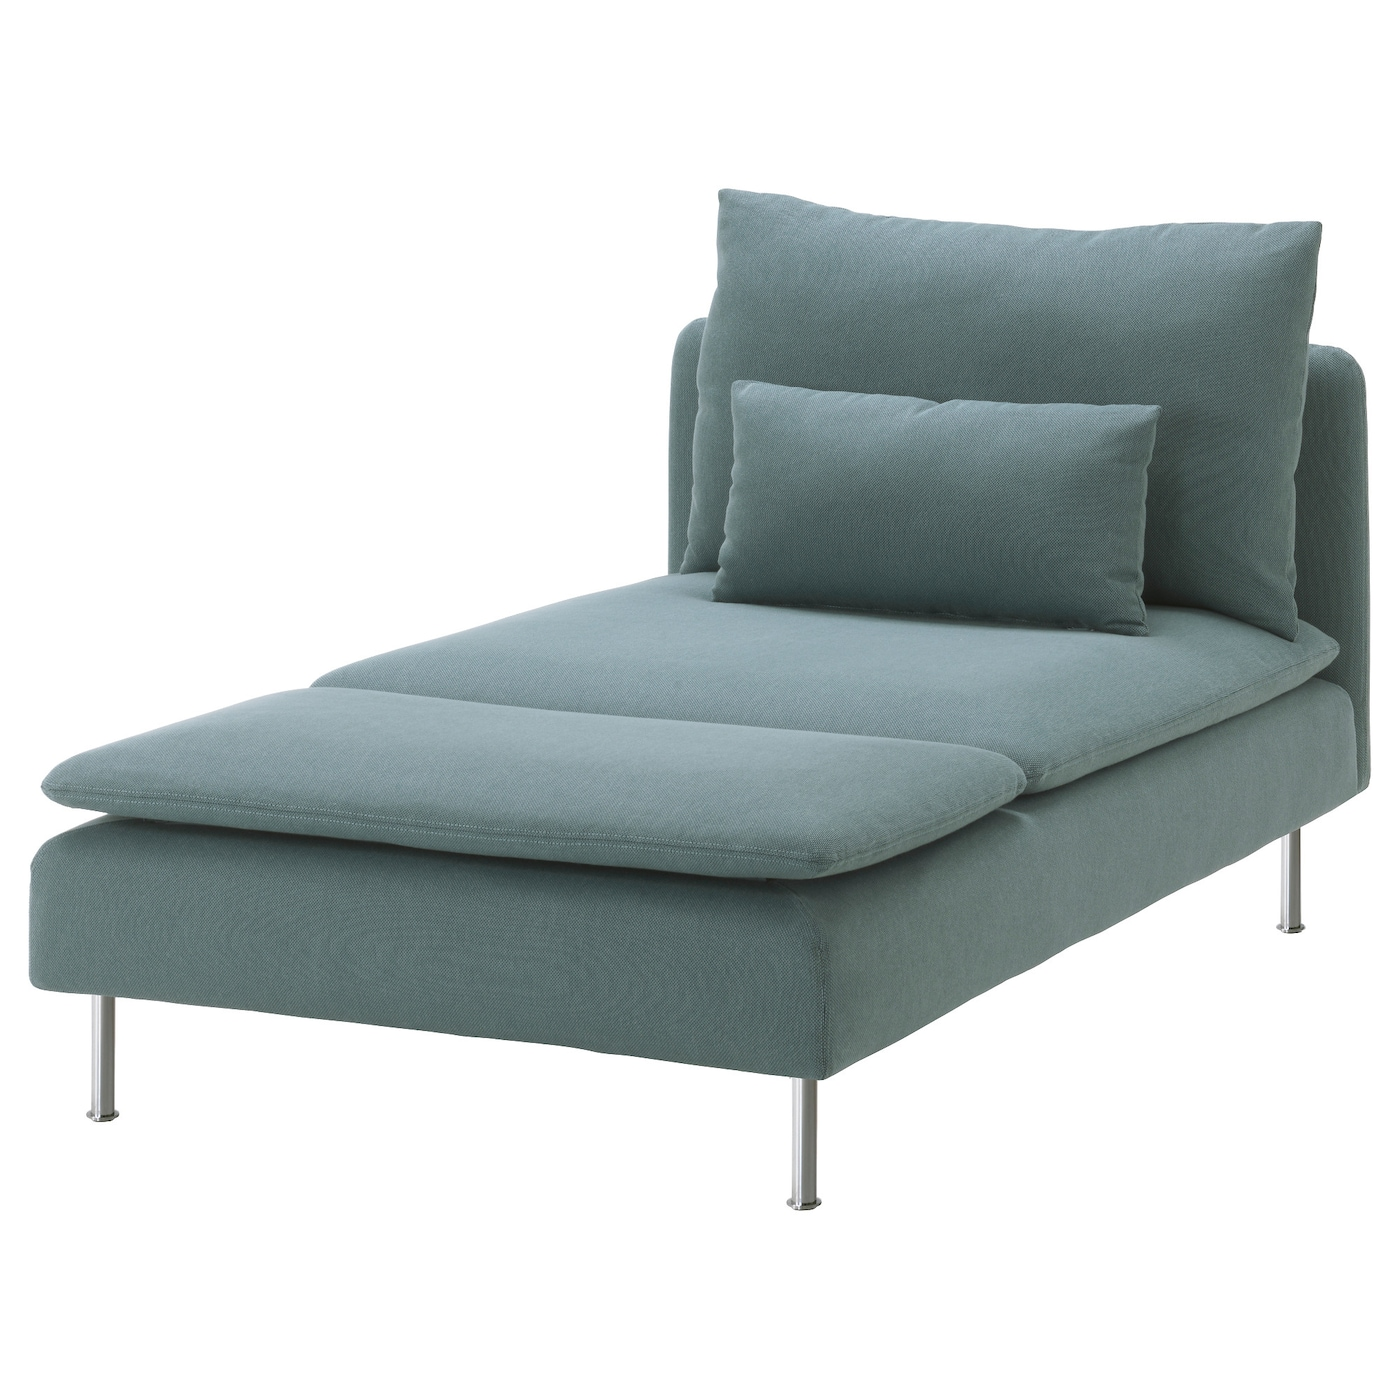 IKEA SÖDERHAMN chaise longue 10 year guarantee. Read about the terms in the guarantee brochure.